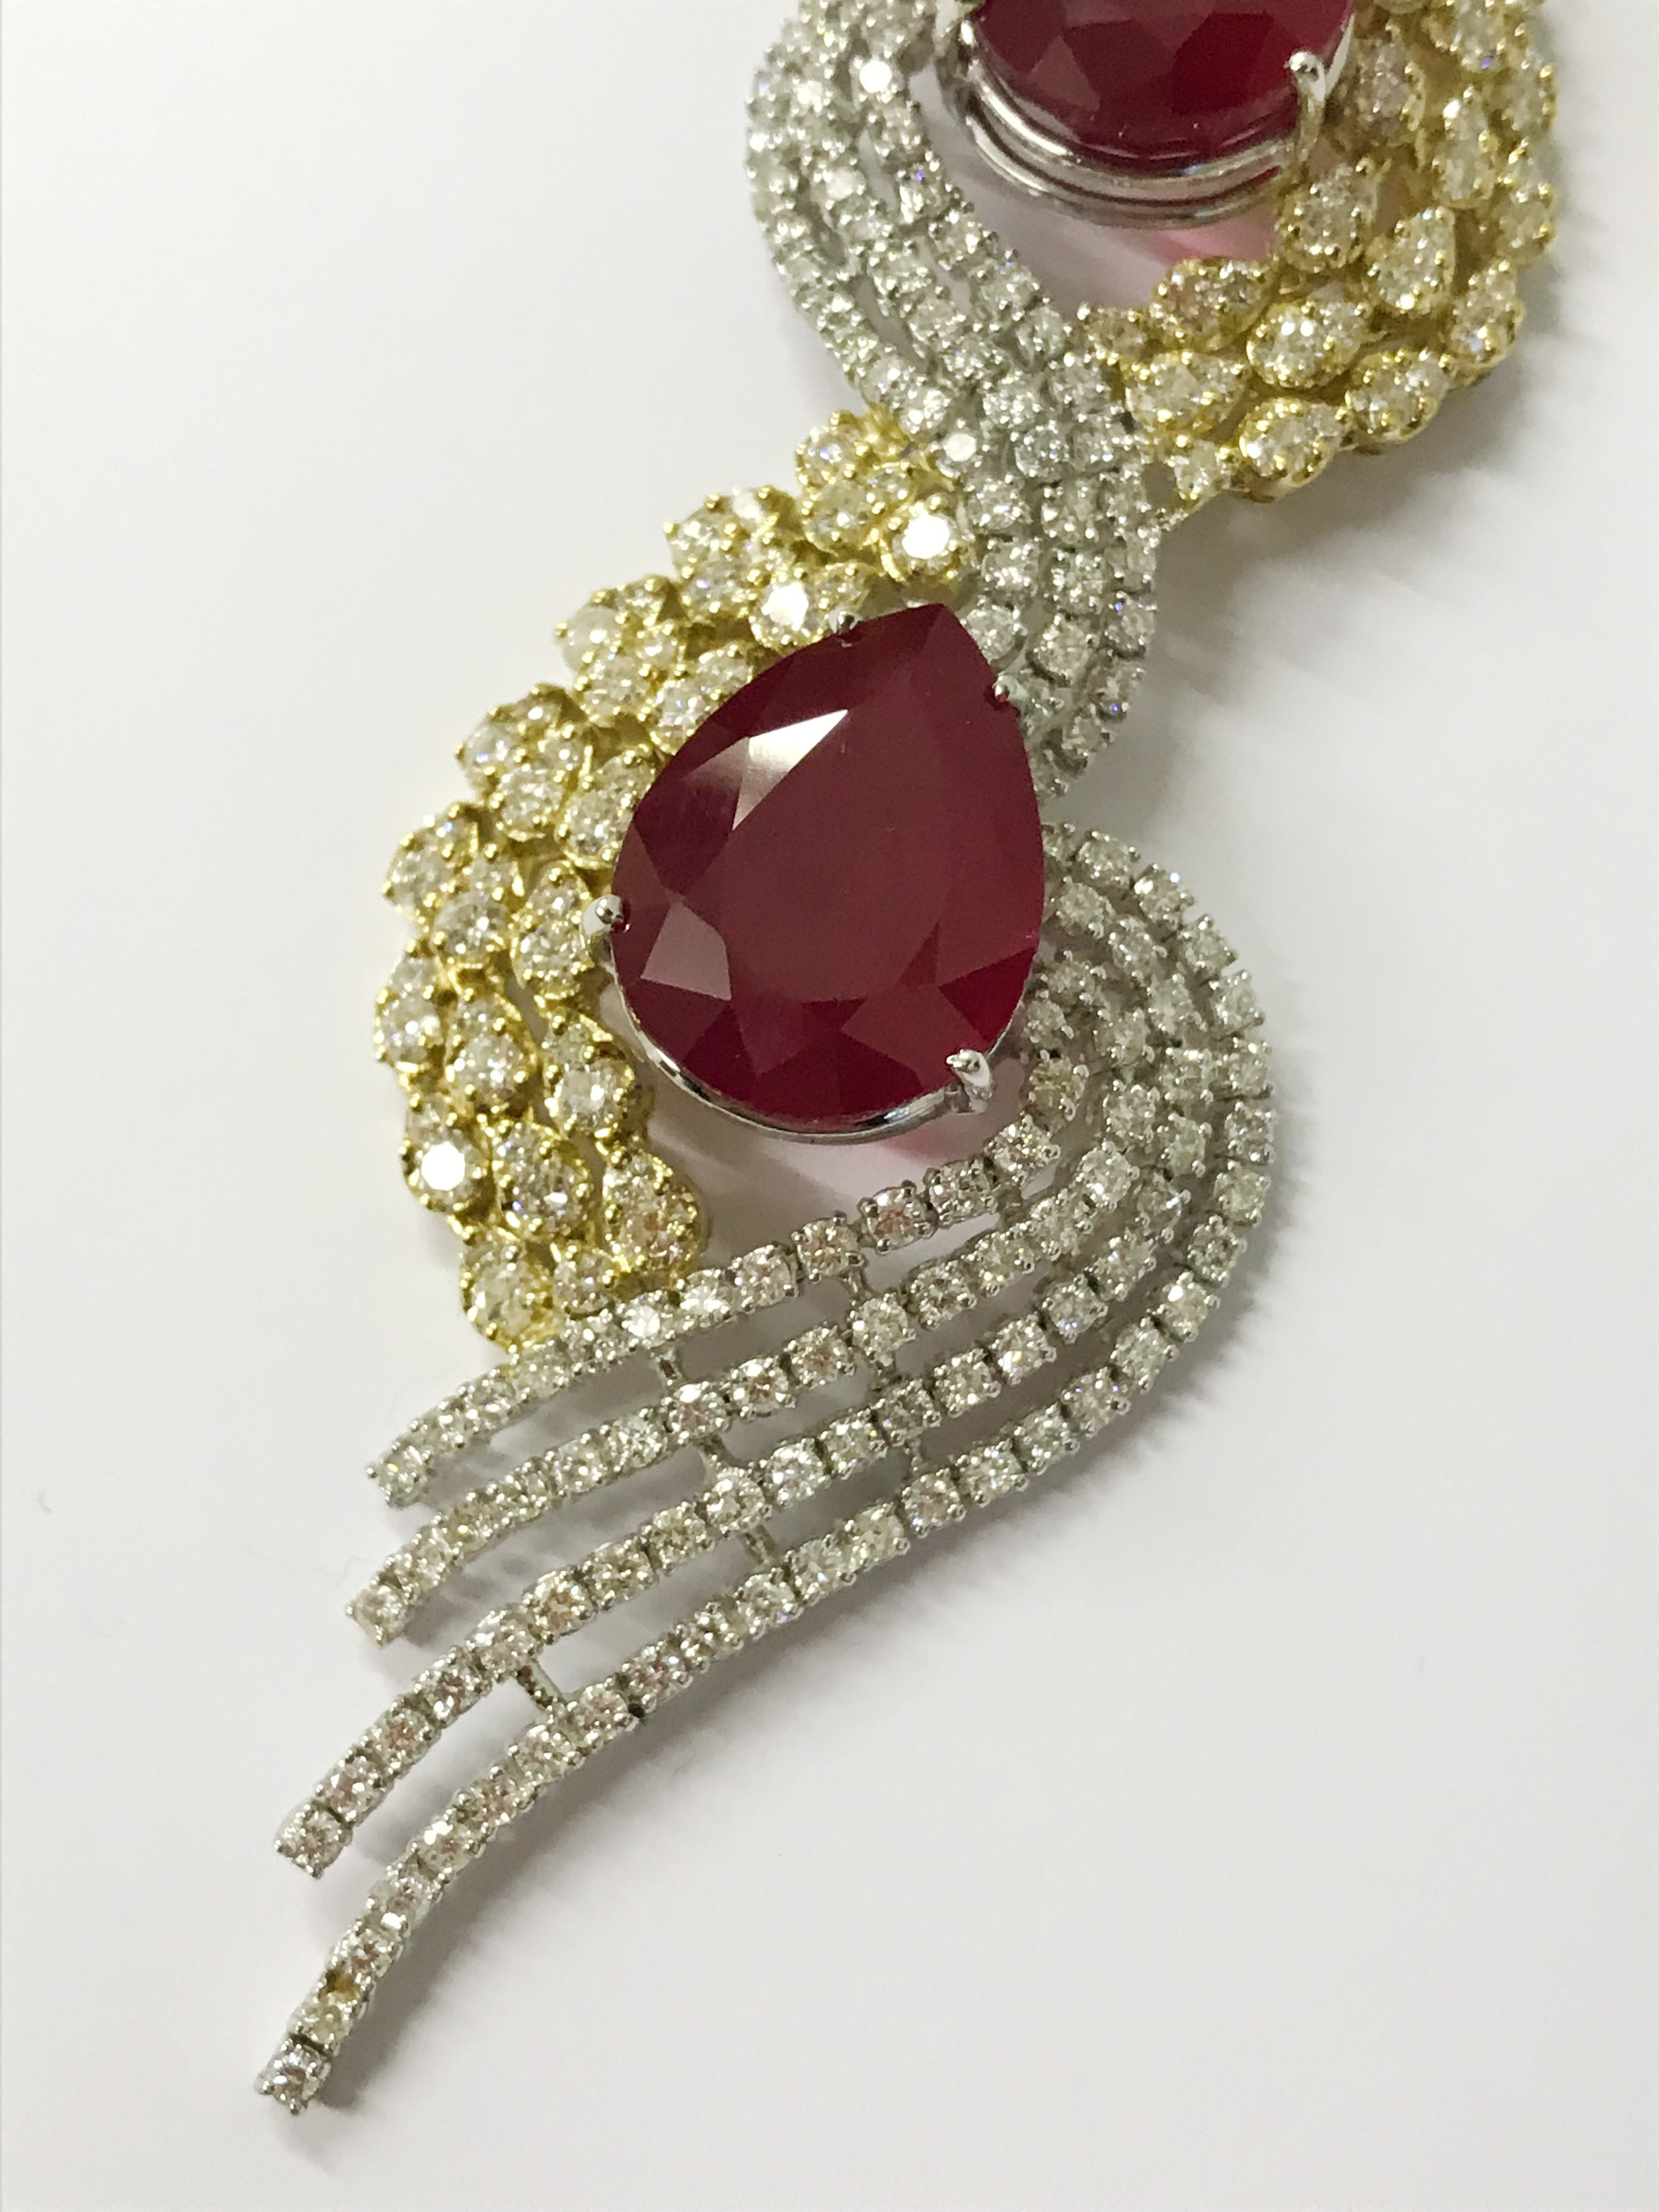 Lot 25A - 18ct WHITE & YELLOW GOLD NECKLACE SET 2 PEAR SHAPE RUBIES AND APPROXIMATELY 487 CUT DIAMONDS